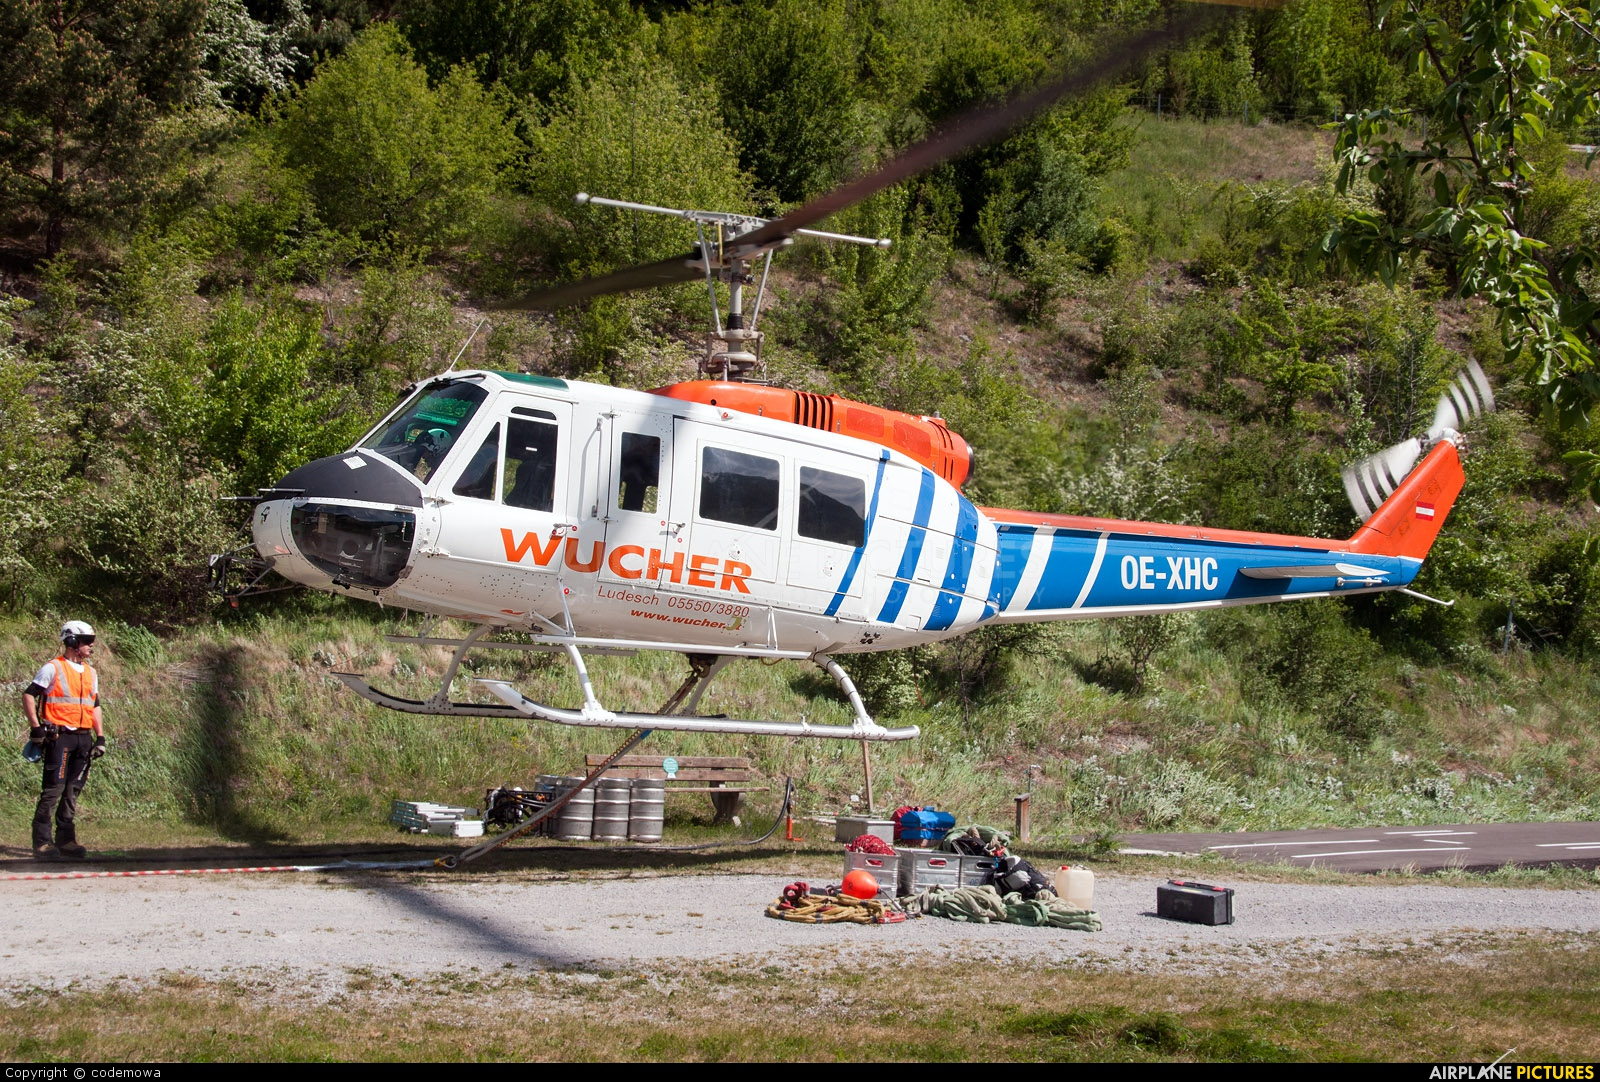 Wucher Helicopter OE-XHC aircraft at Off Airport - Austria